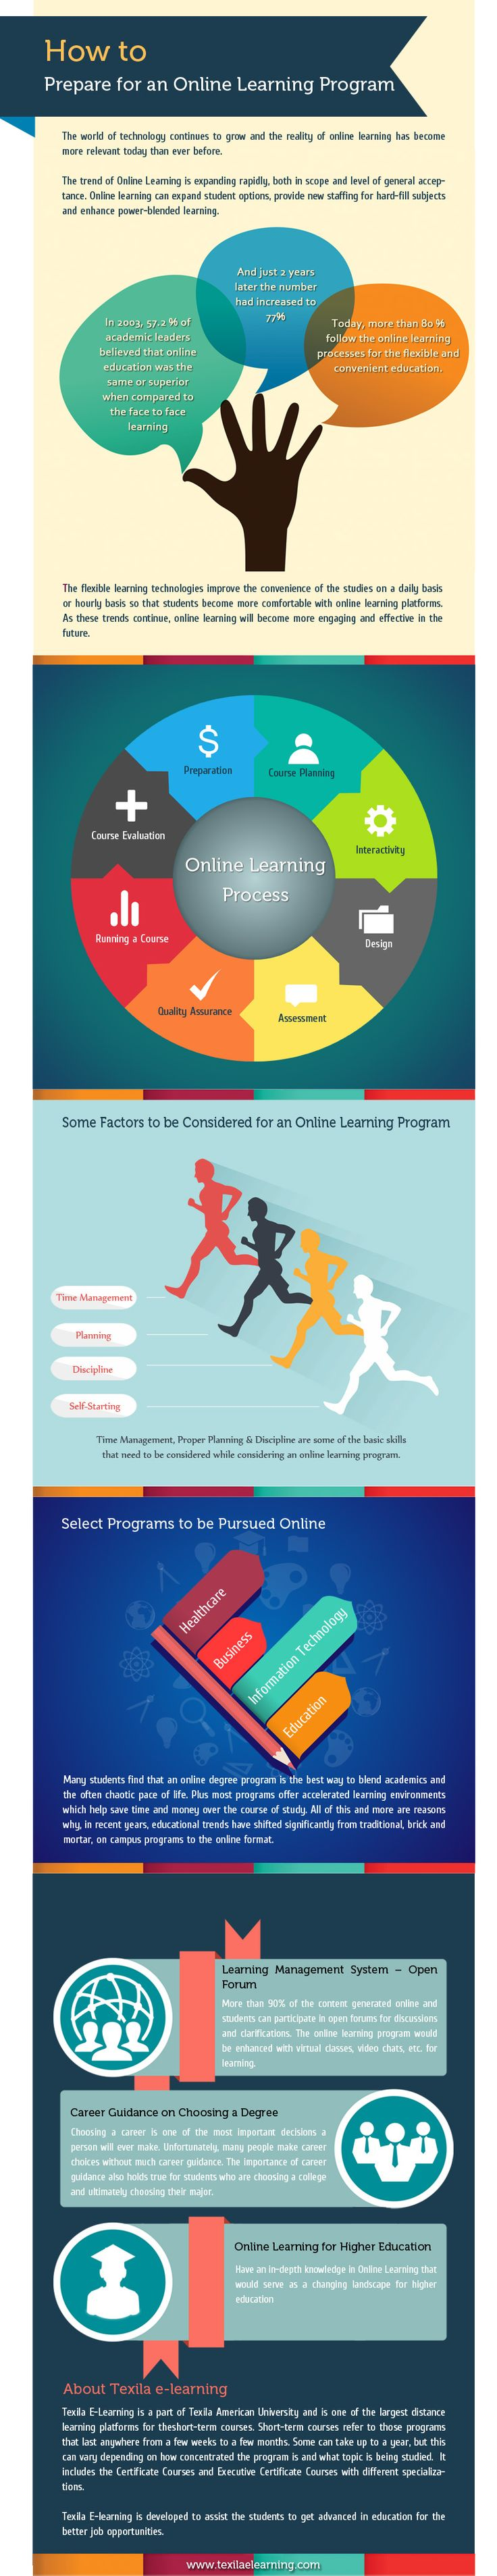 244 best elearning images on pinterest instructional design role how to prepare for an online learning program infographic fandeluxe Choice Image